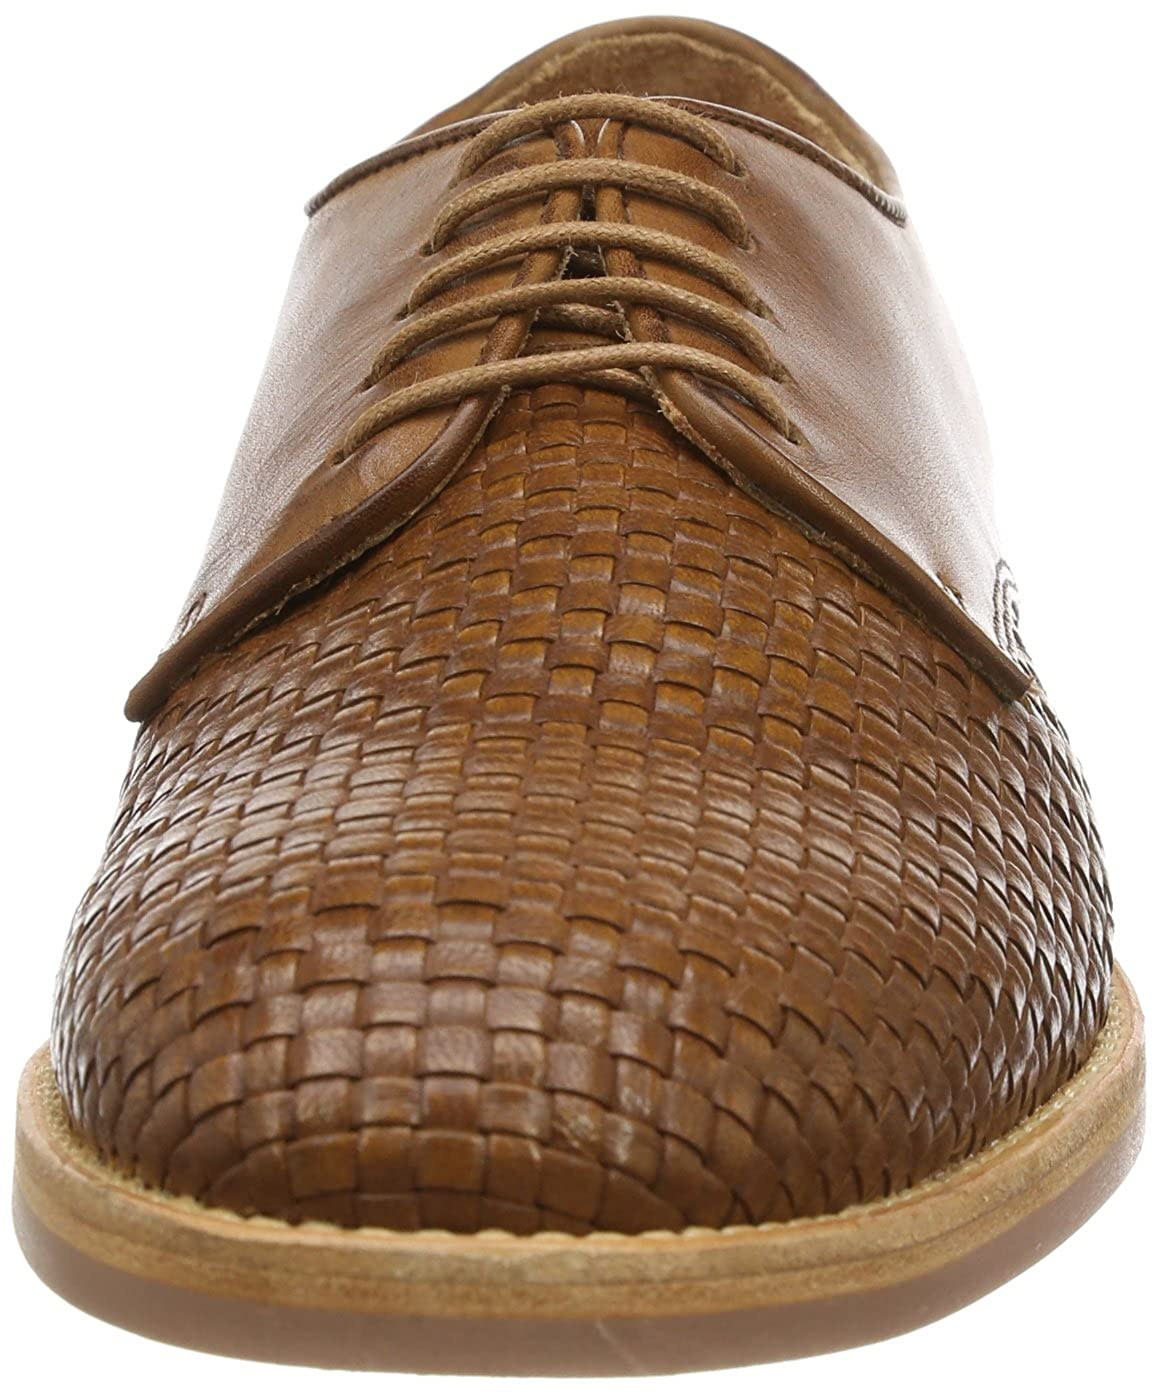 H By Hudson Men's Hadstone Calf Oxford Oxford Oxford 42 EU/9 M US|Tan Weave B00GZERBK2 895b76